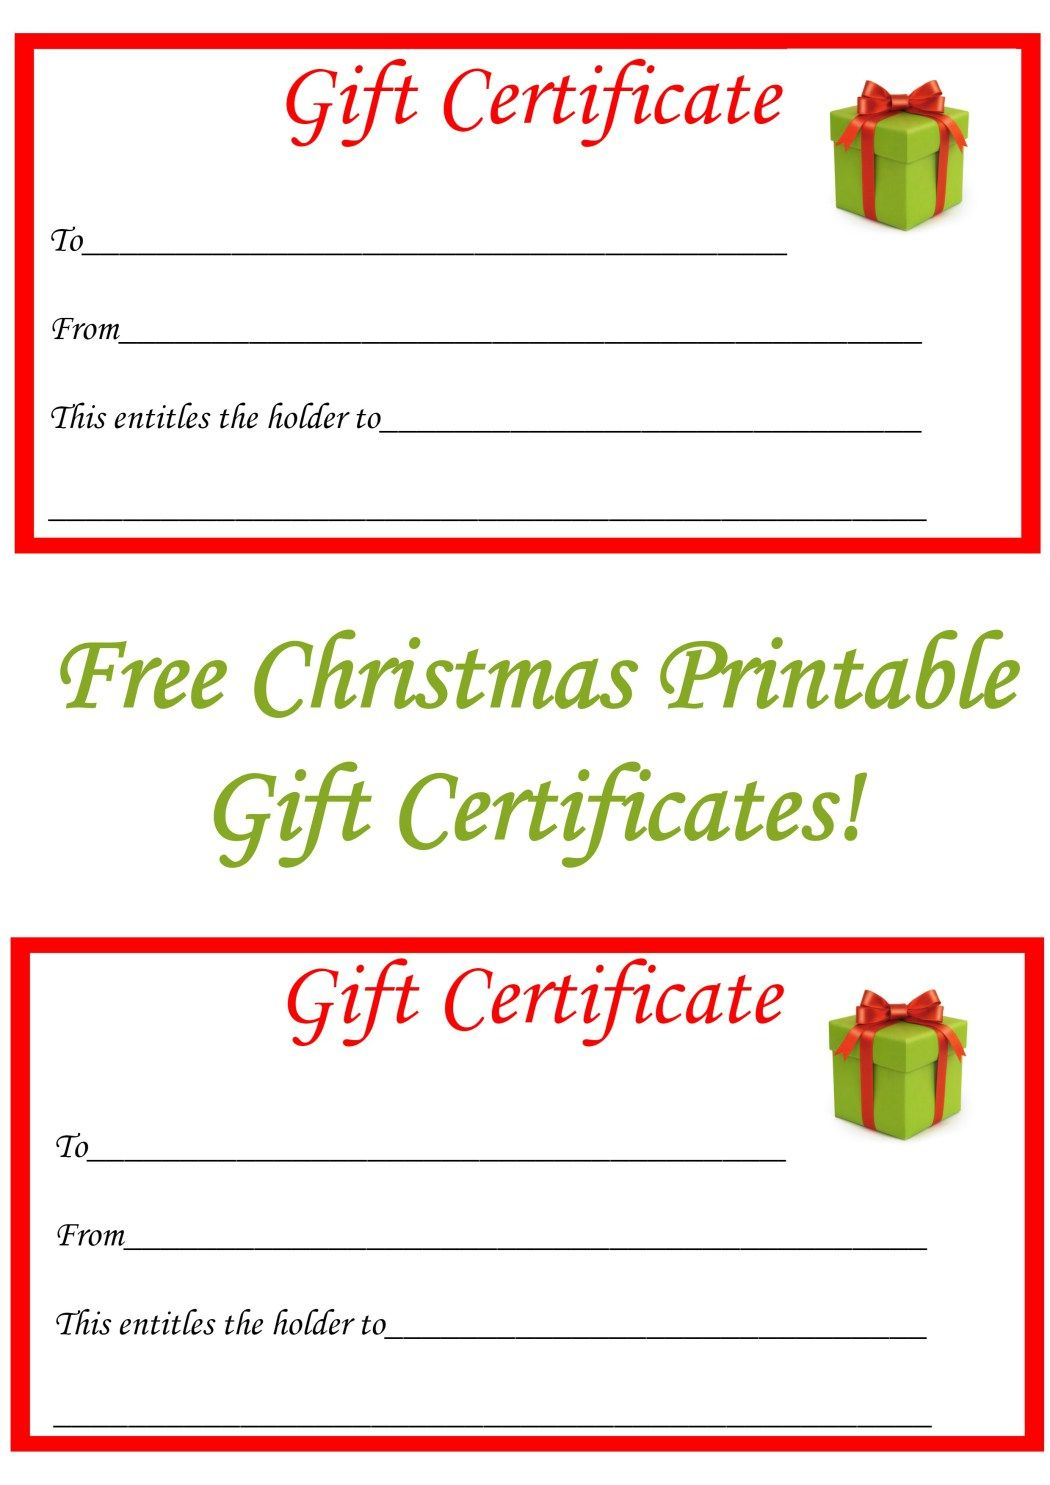 Free Christmas Printable Gift Certificates  Free Christmas Gifts